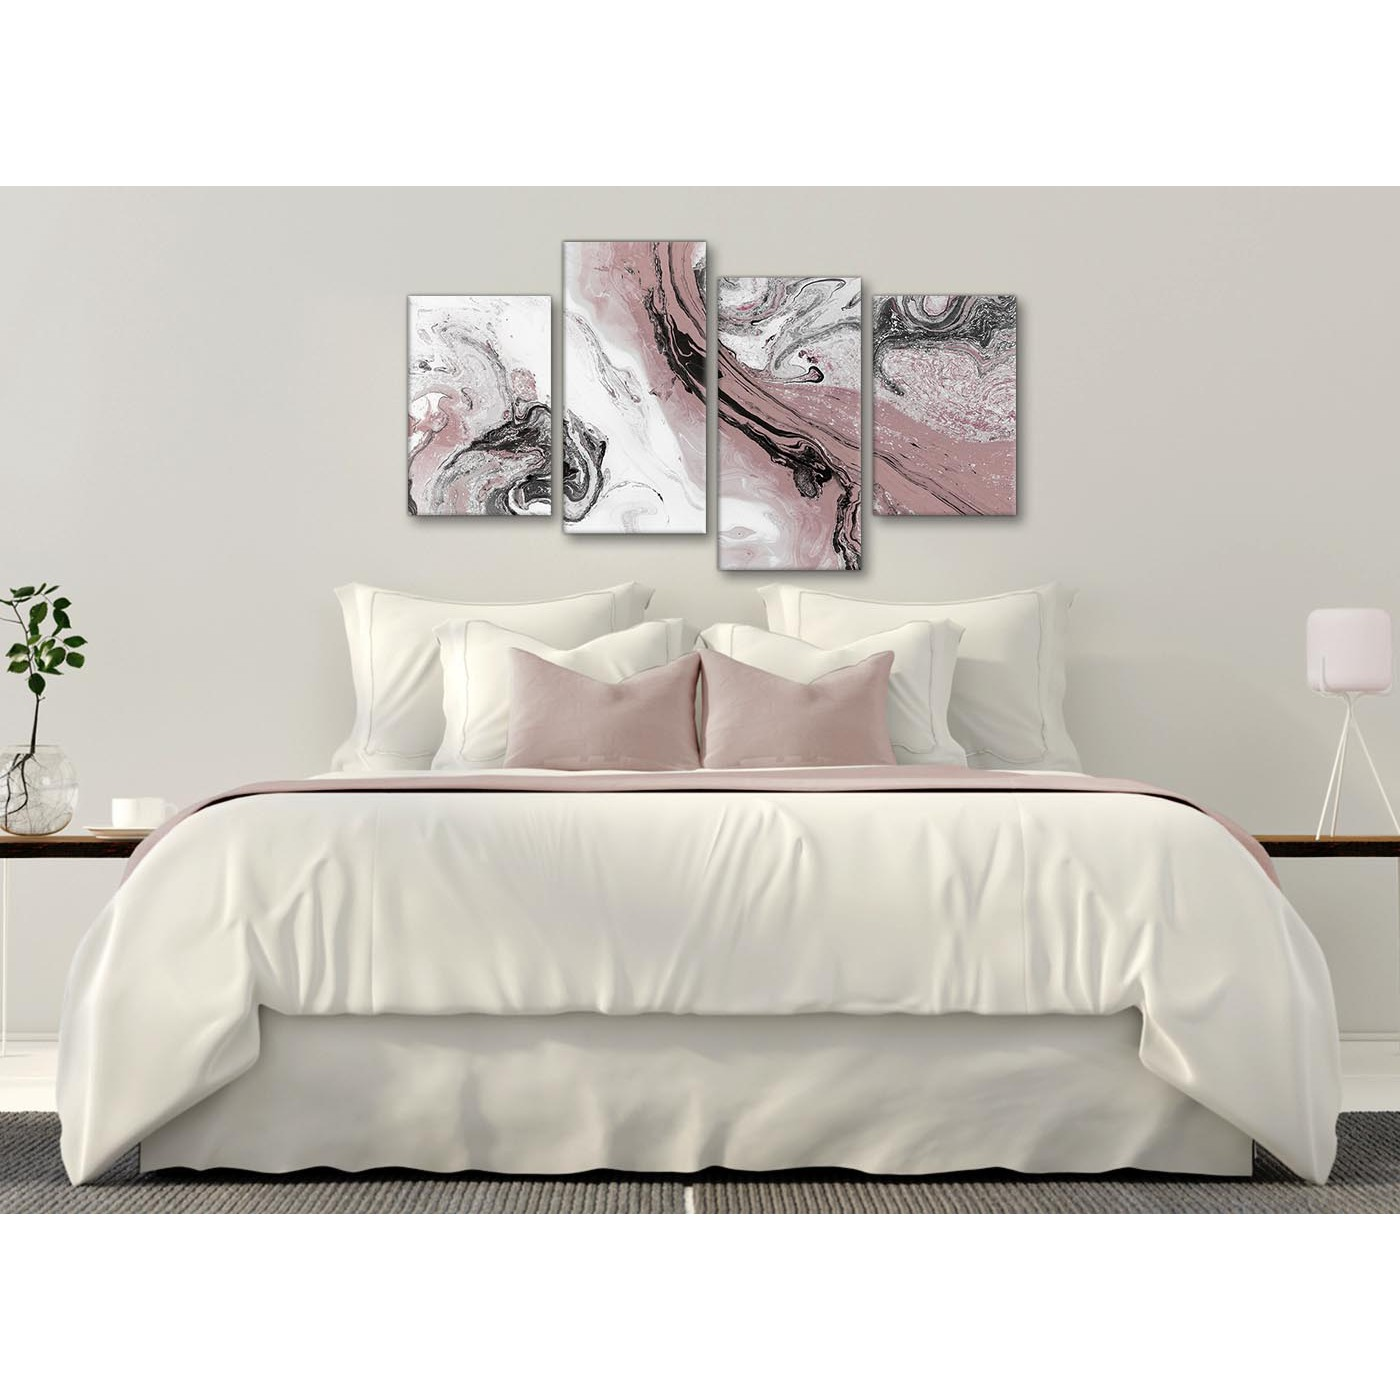 Large Blush Pink And Grey Swirl Abstract Bedroom Canvas Wall Art Decor 4463 130cm Set Of Prints